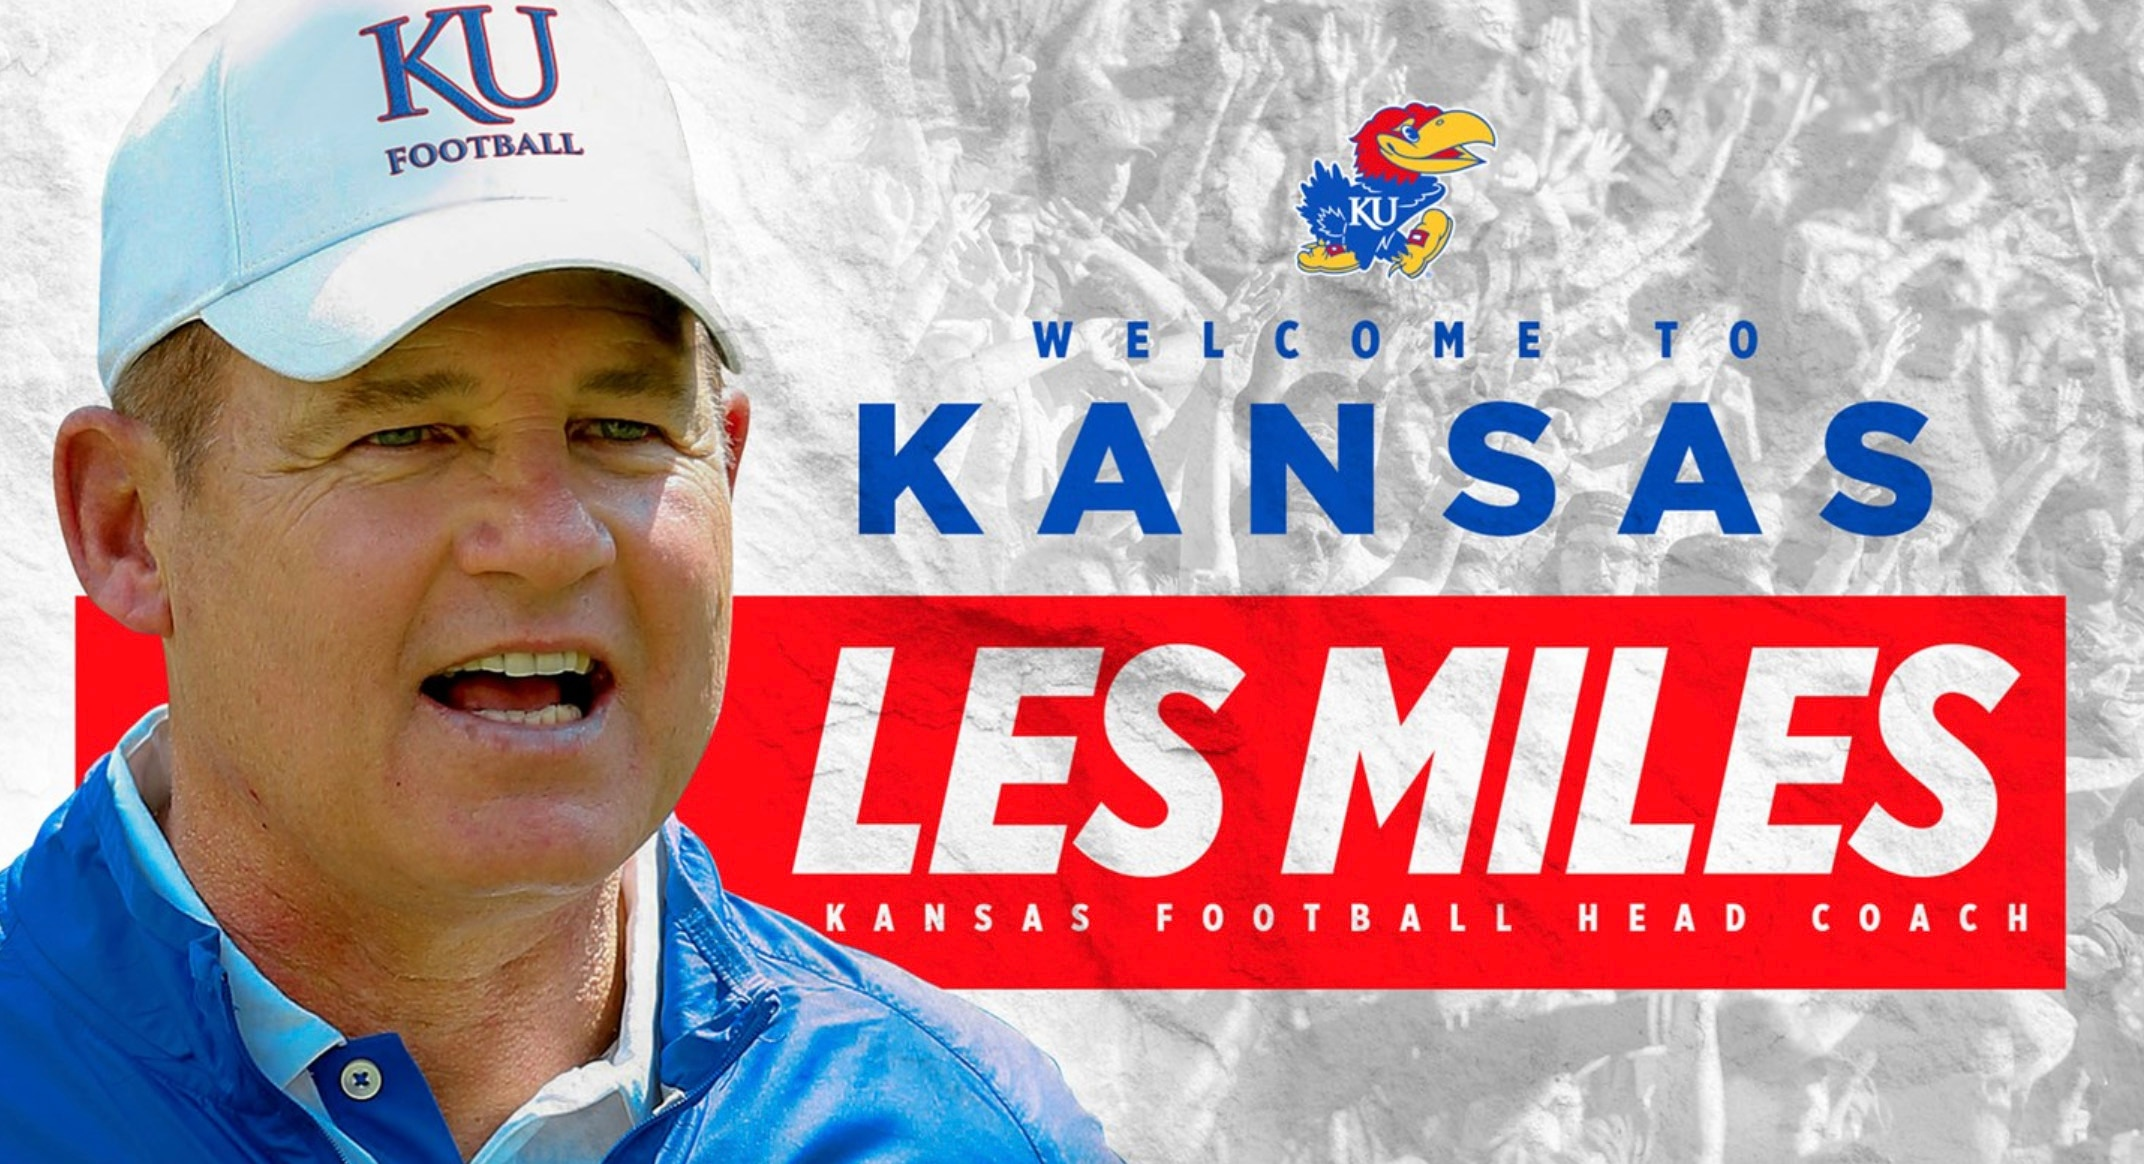 Ncaa Football Bowls 2018 >> Kansas football hires Les Miles as coach | NCAA.com